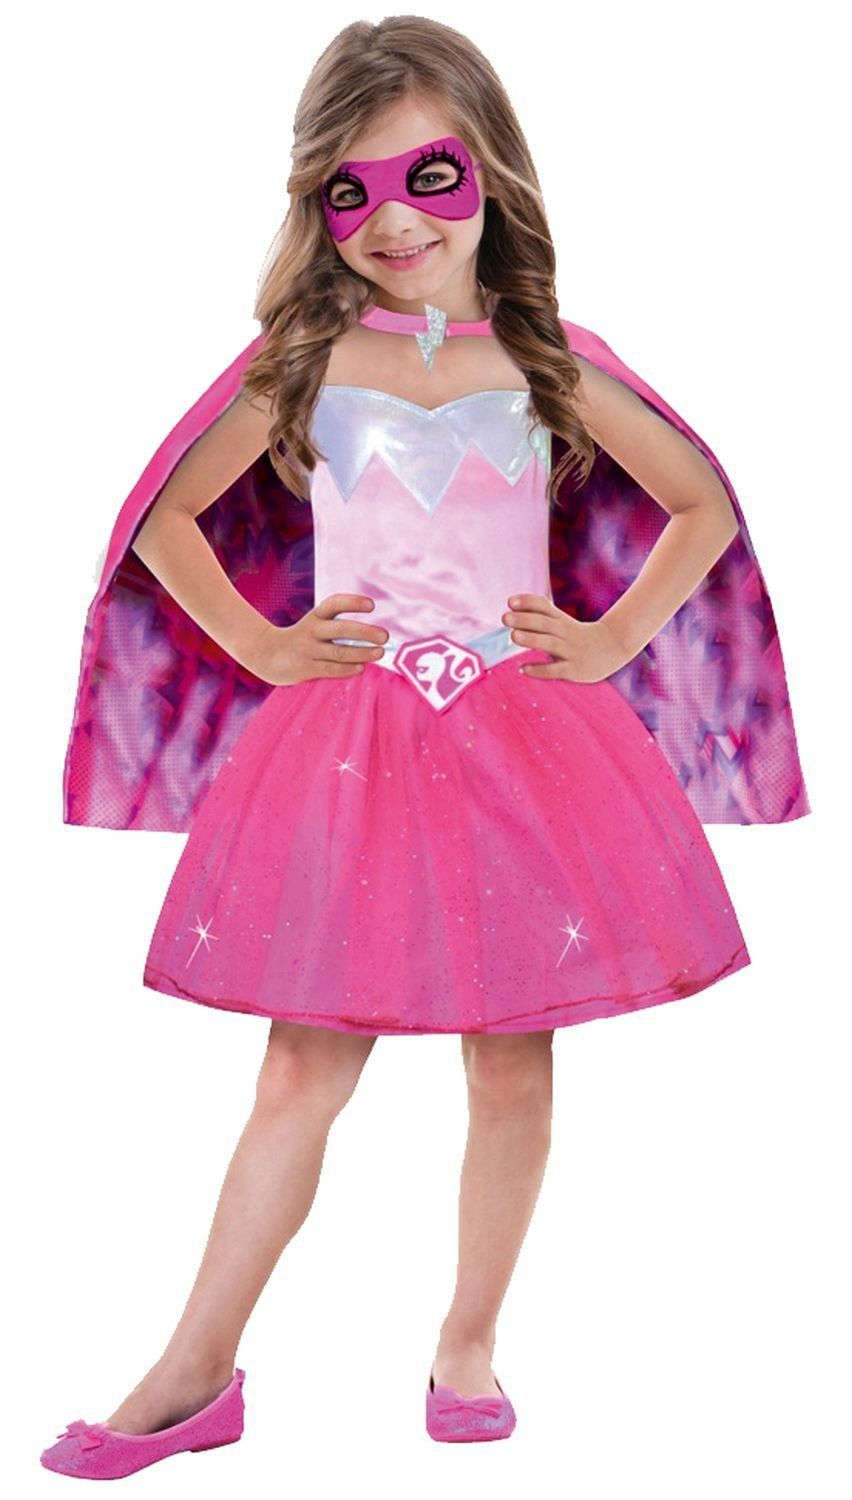 Barbie Super Power Princess Costume (8-10 Years): Amazon.co.uk: Toys ...